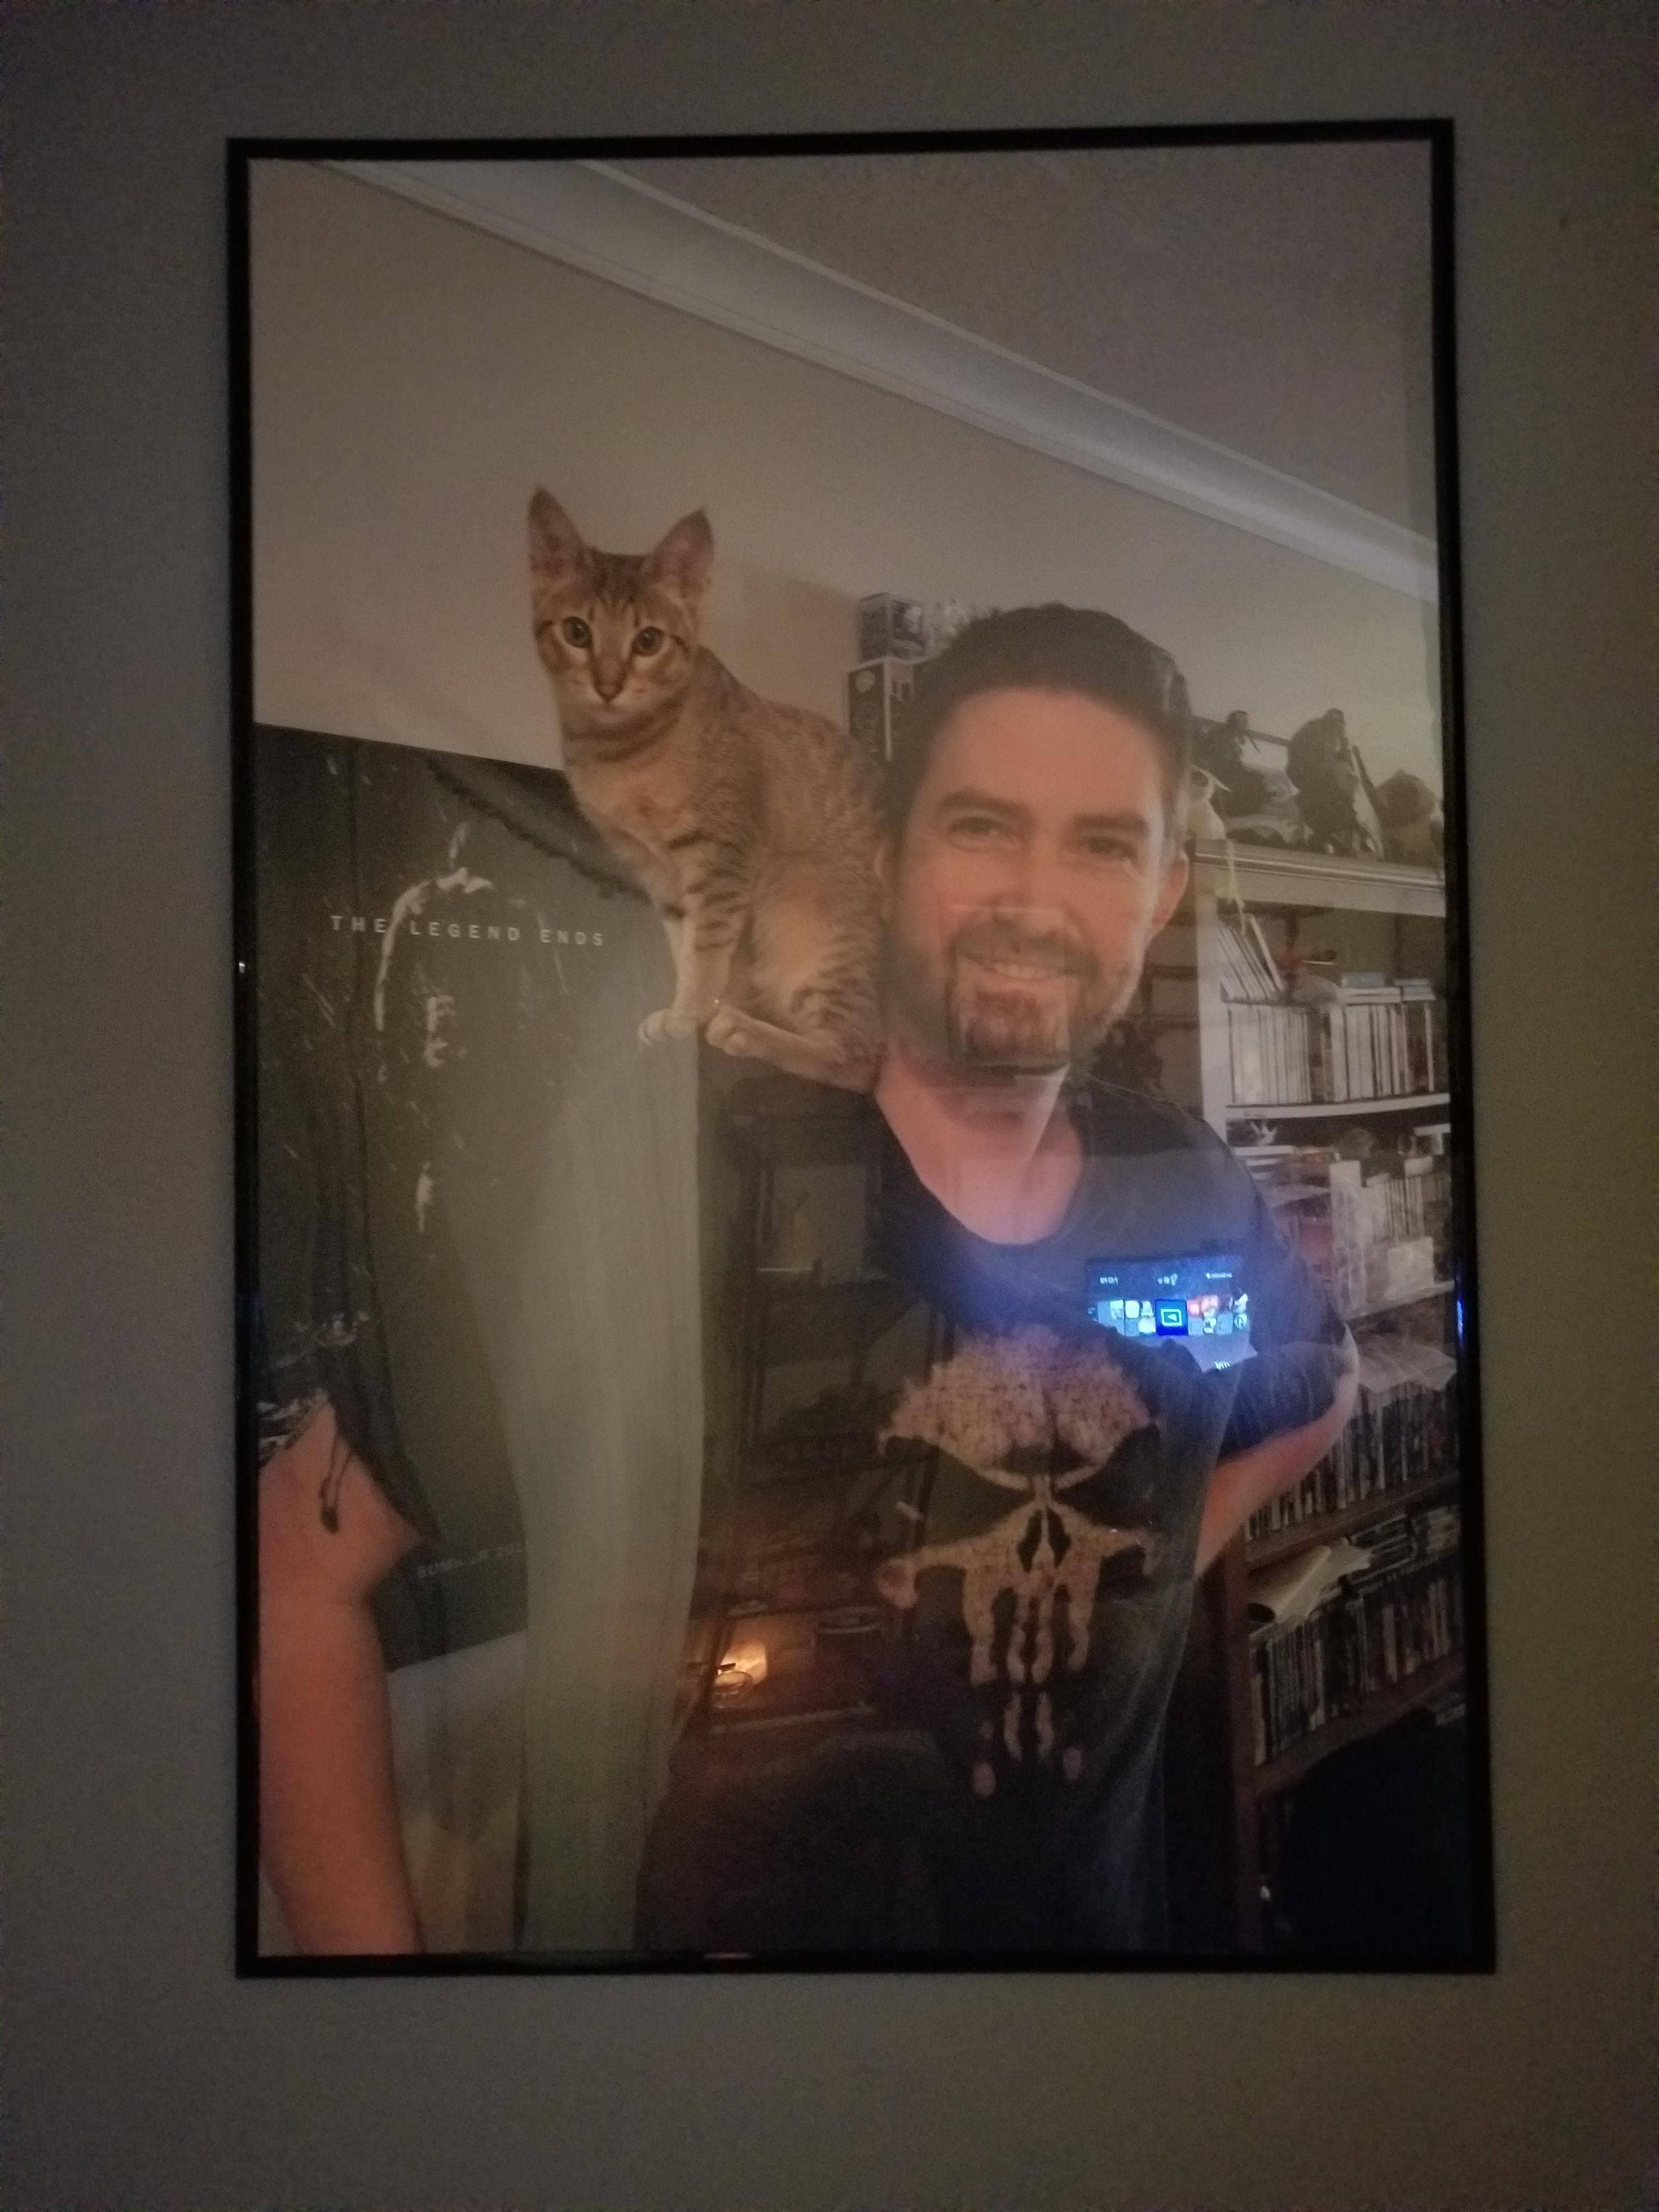 My buddy gave my fiance and I a photo of himself and his cat as a house warming gift.